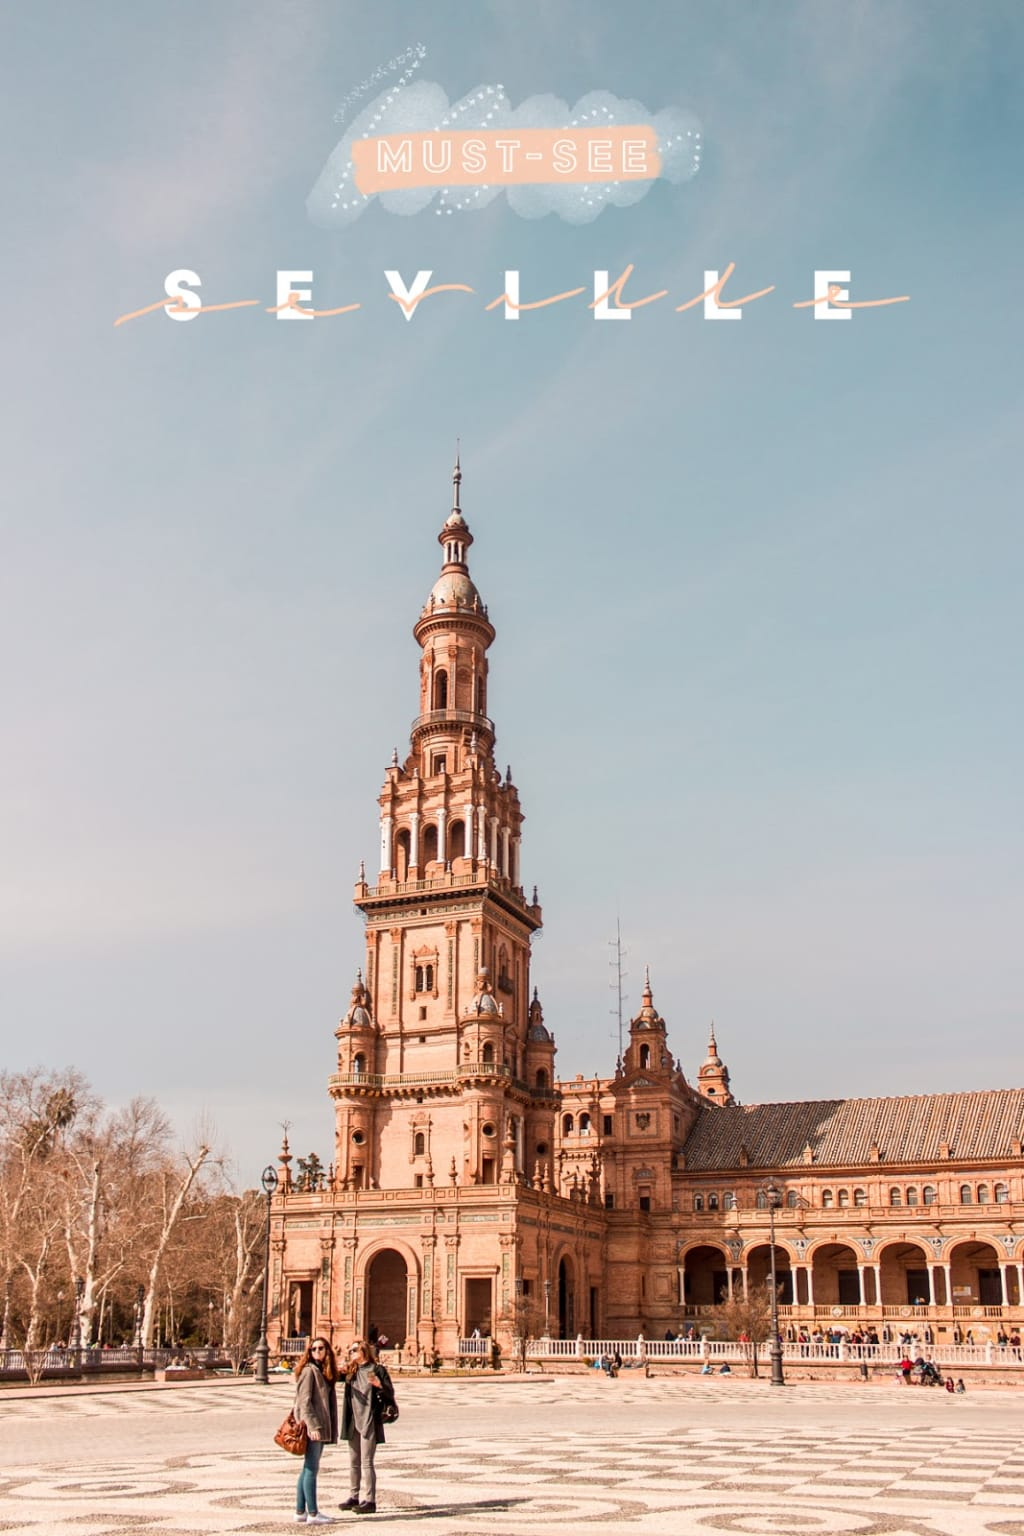 4 Reasons Sevilla Should Be on Your 2021 Travel Wishlist